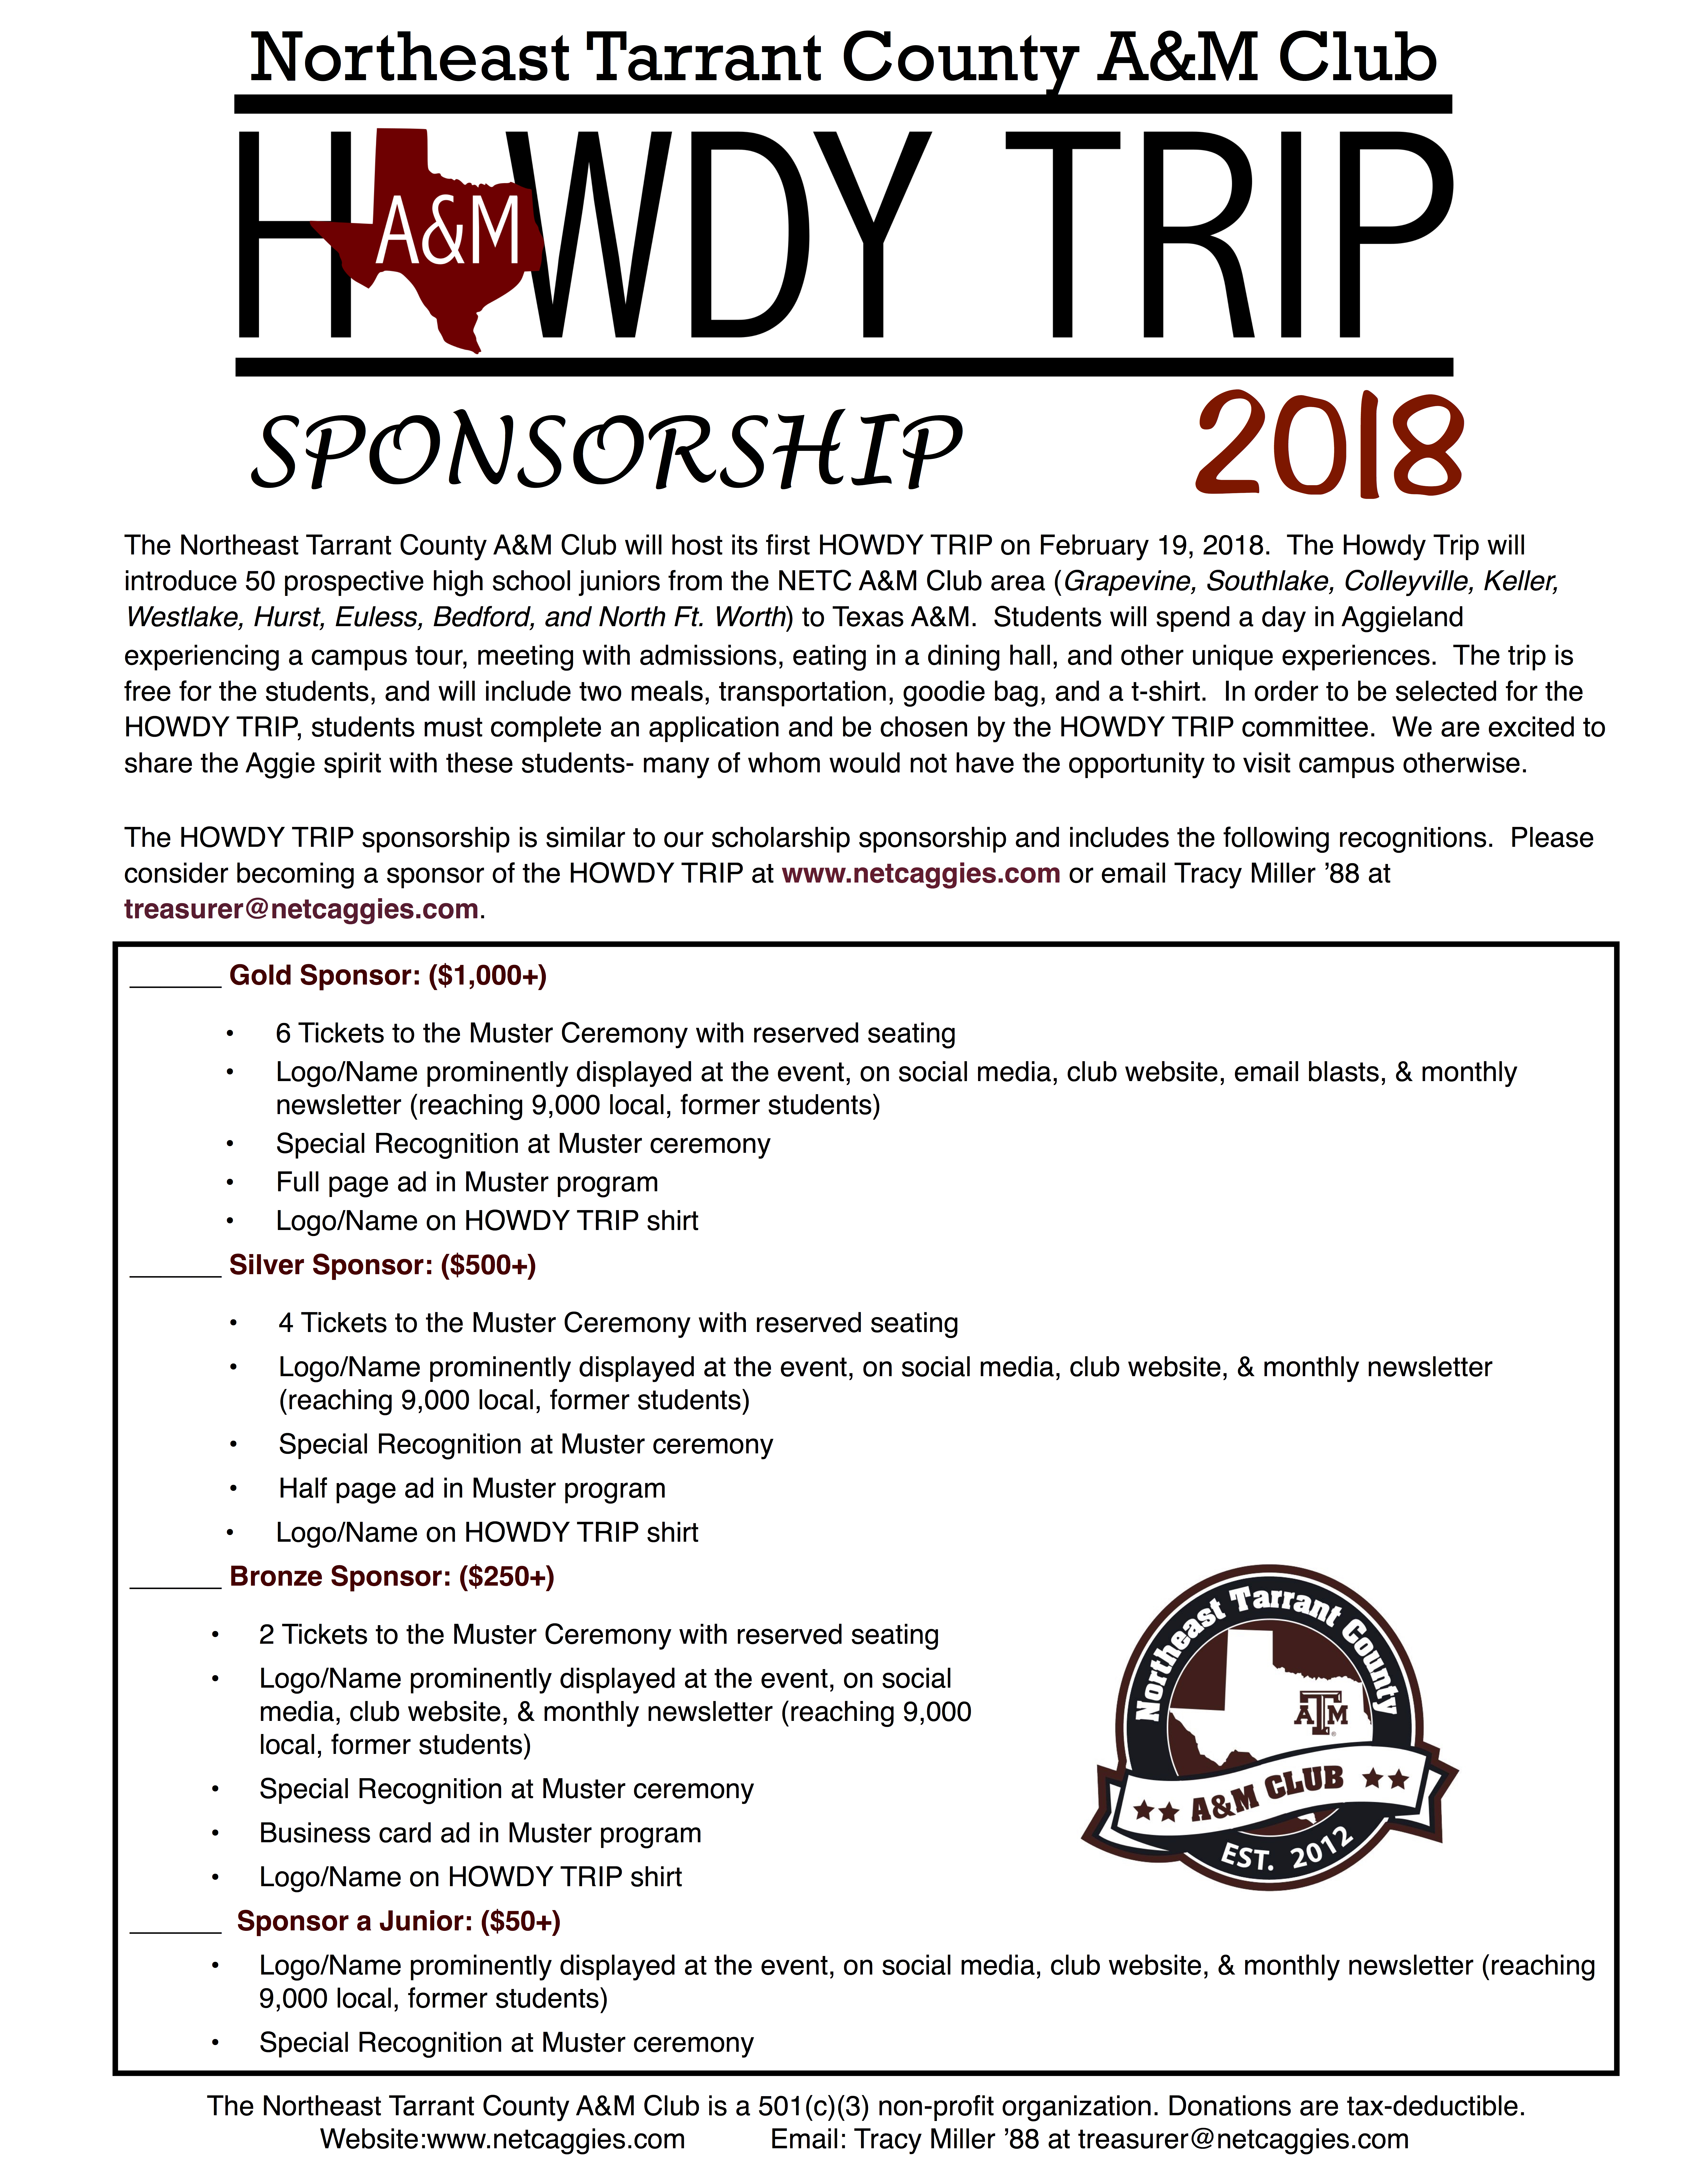 Howdy Trip 2018 Applications & Sponsorships – Northeast Tarrant ...